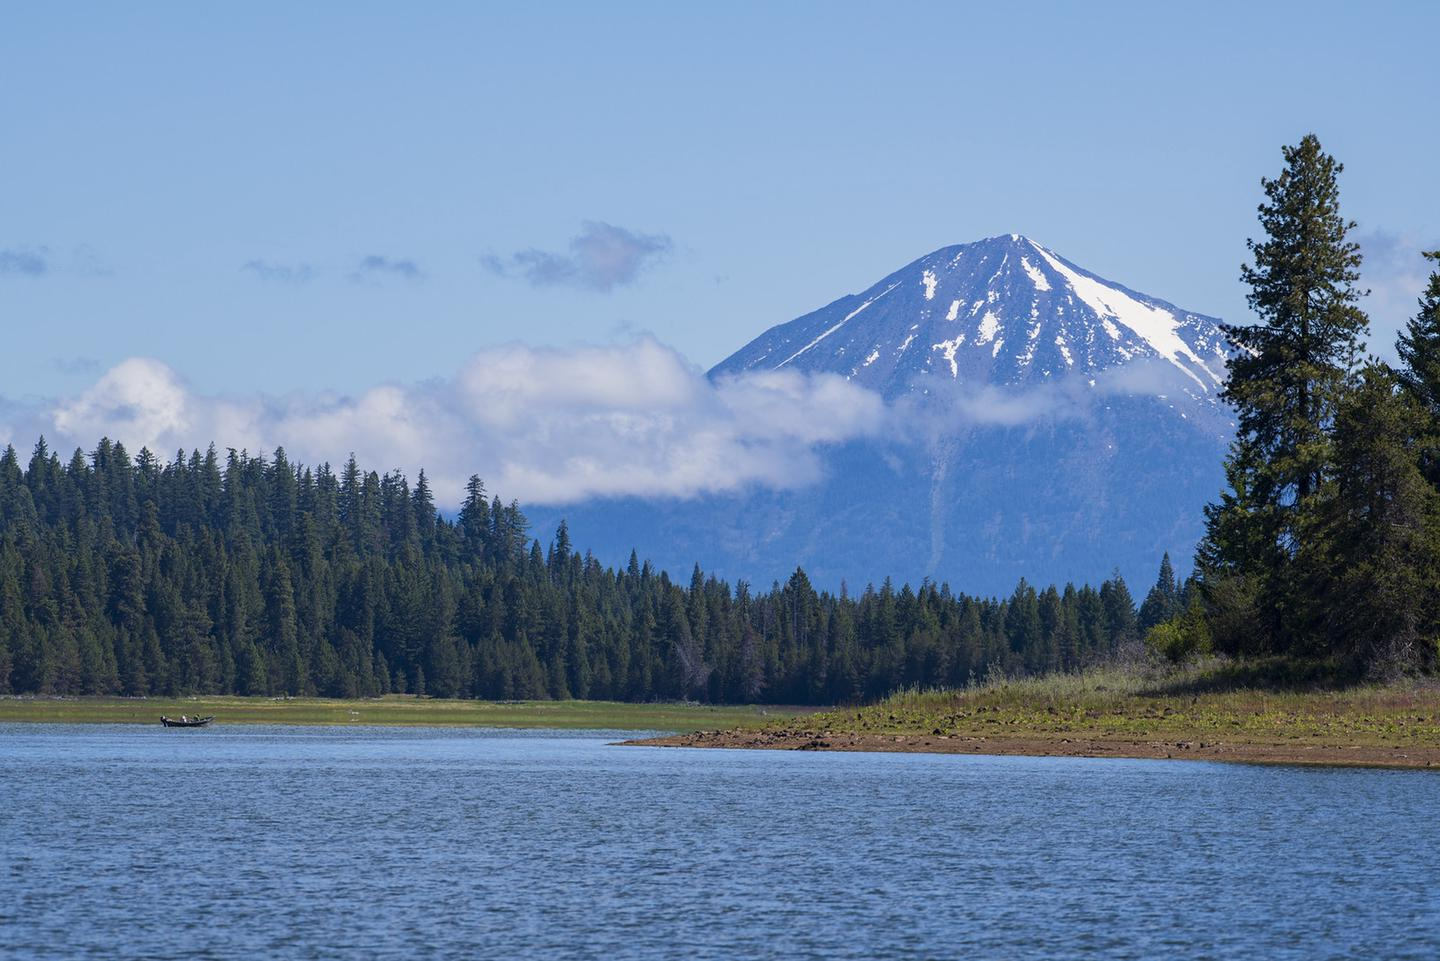 Hyatt Lake and Mt McLoughlin